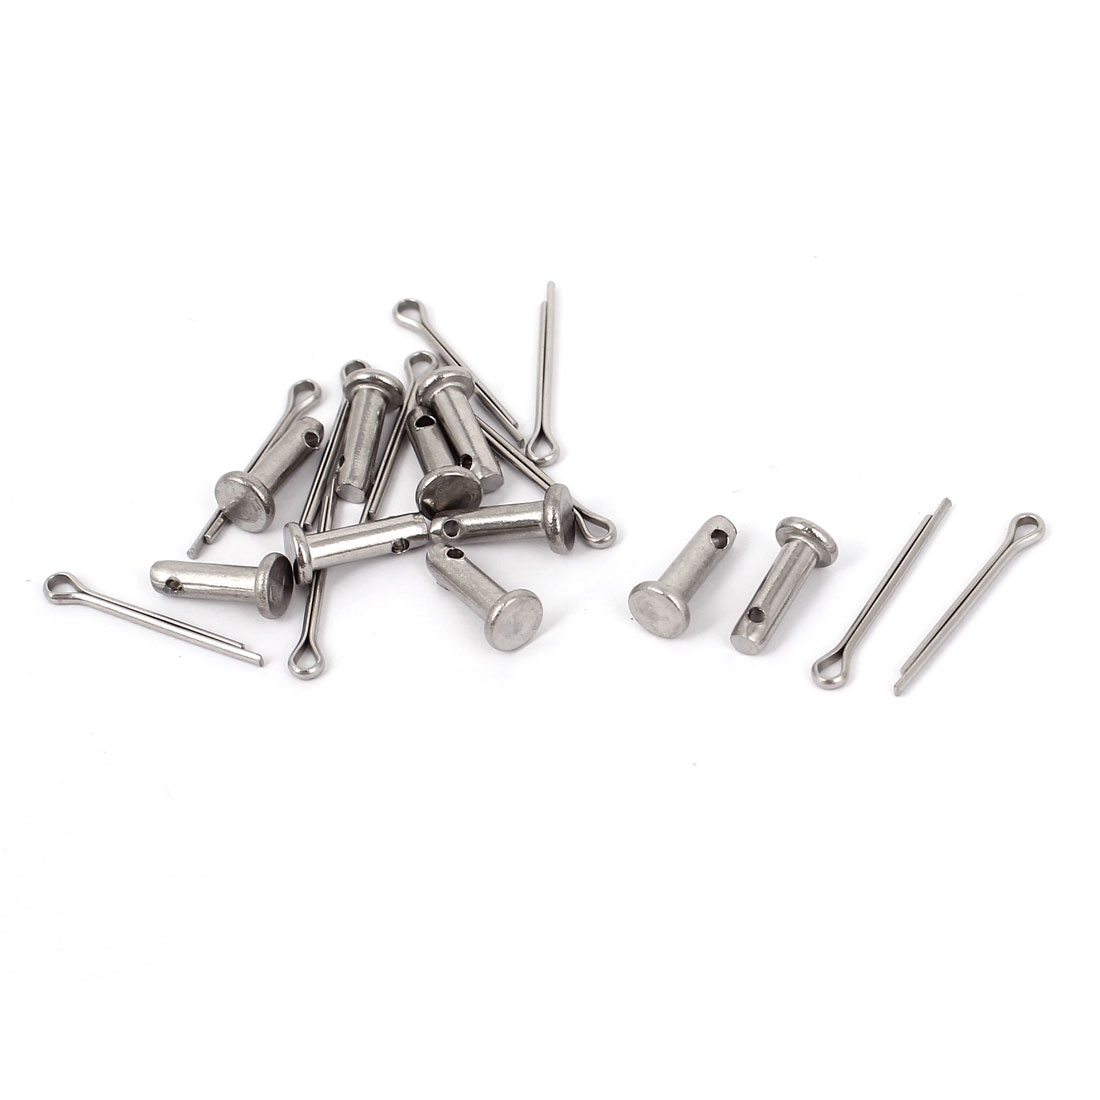 M3 x 10mm Flat Head 304 Stainless Steel Round Clevis Pins Fastener 10Pcs